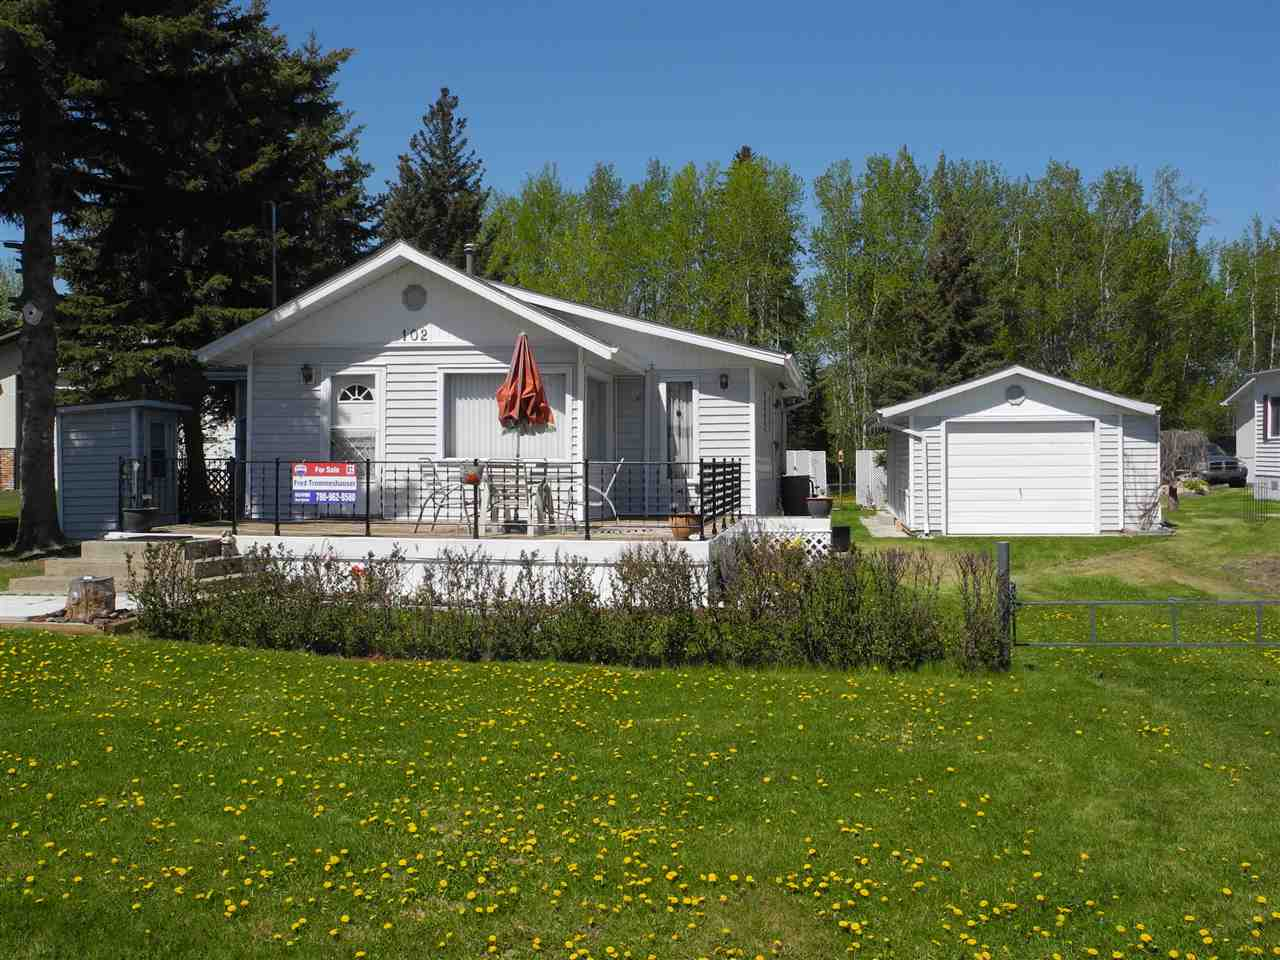 Welcome to this Gorgeous 3 season cottage with amazing lake views!! On an easy paved commute from the city you will find this fantastic two bedroom bungalow. Large windows surround the dinette just off the full kitchen. Bedrooms are large as is the 4 piece bathroom. Nice bright south facing deck to enjoy the sunshine and views of the lake. Large lot with firepit area and plenty of parking for all the toys. Detached garage that also features a bunkhouse when extra guests show up. There is a Drilled well, holding tank, space heater, and 100 amp electrical that just add to this gem. So bring your boats, toys and walking shoes and enjoy what lakeside living has to offer. Plenty of room to park the RV as well.